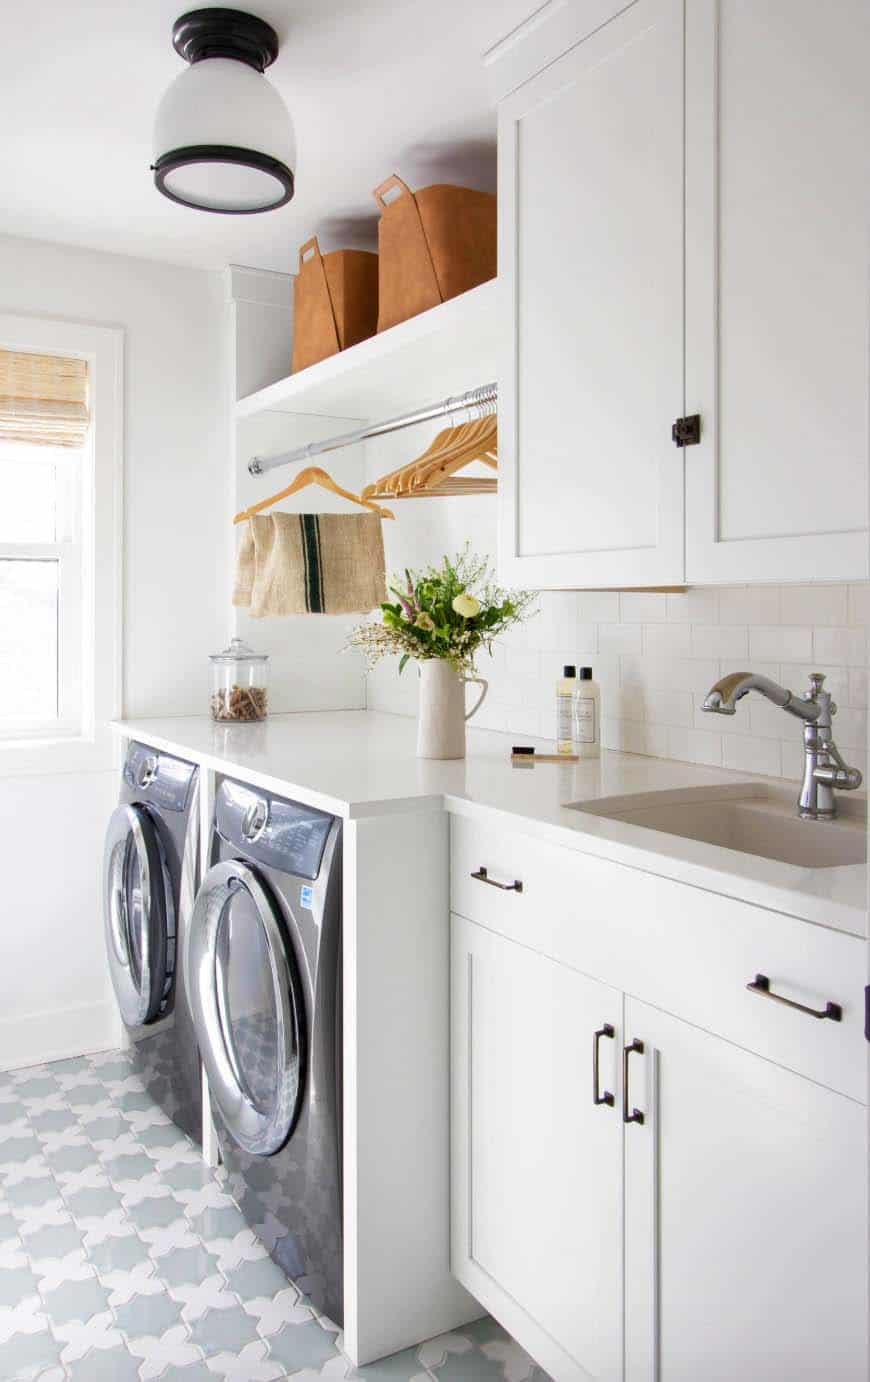 45 Functional And Stylish Laundry Room Design Ideas To Inspire on Laundry Room Decor Ideas  id=48184